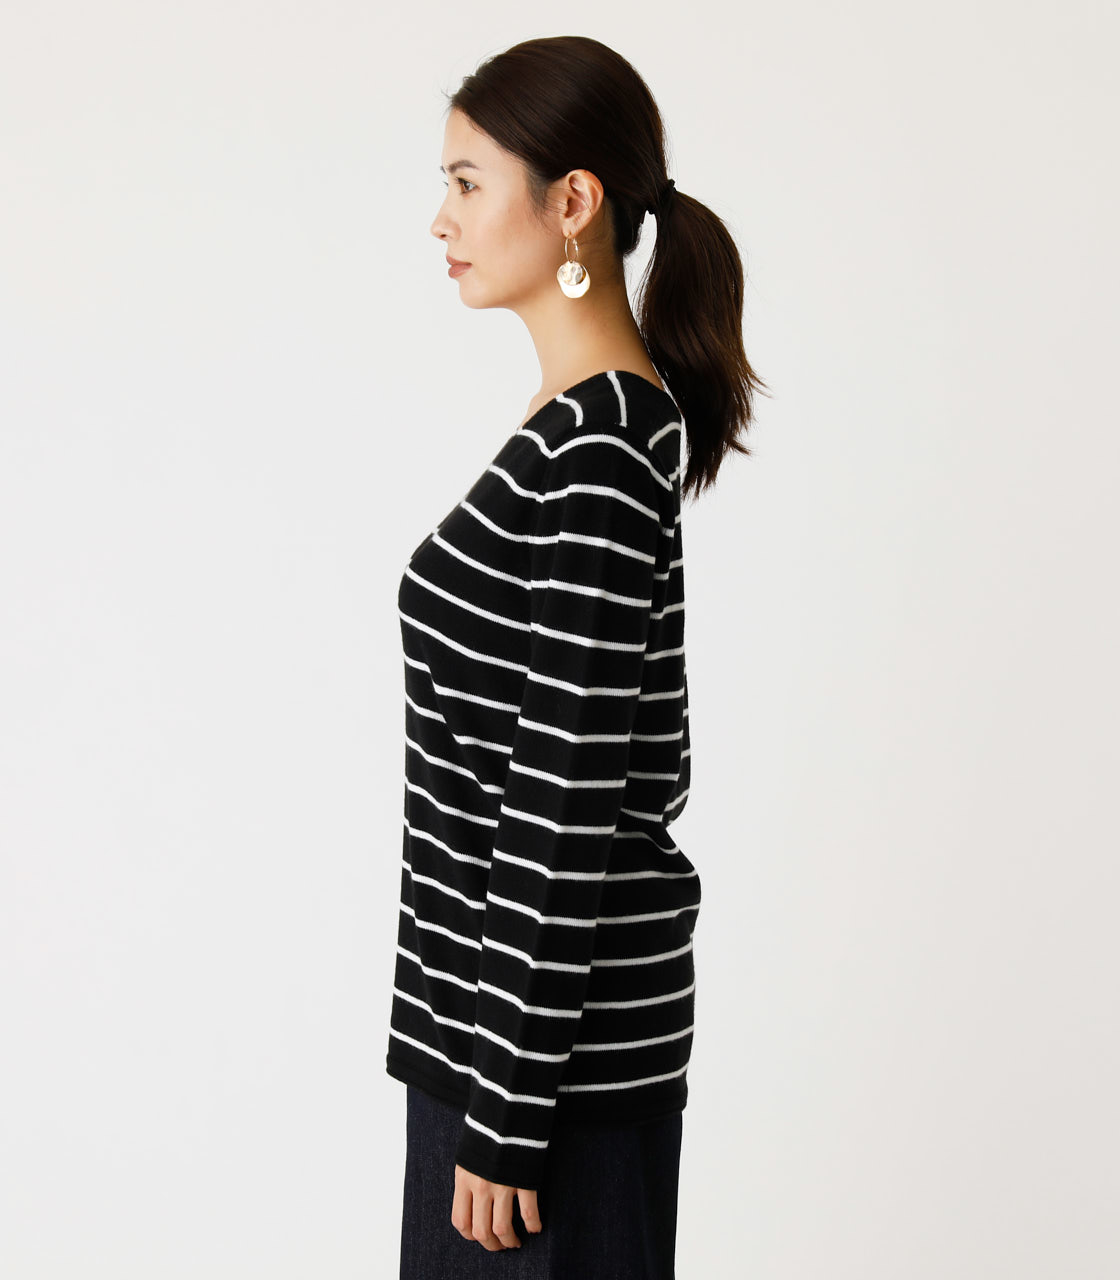 NUDIE V/N KNIT TOPS Ⅱ/ヌーディーVネックニットトップスⅡ 詳細画像 柄BLK 5